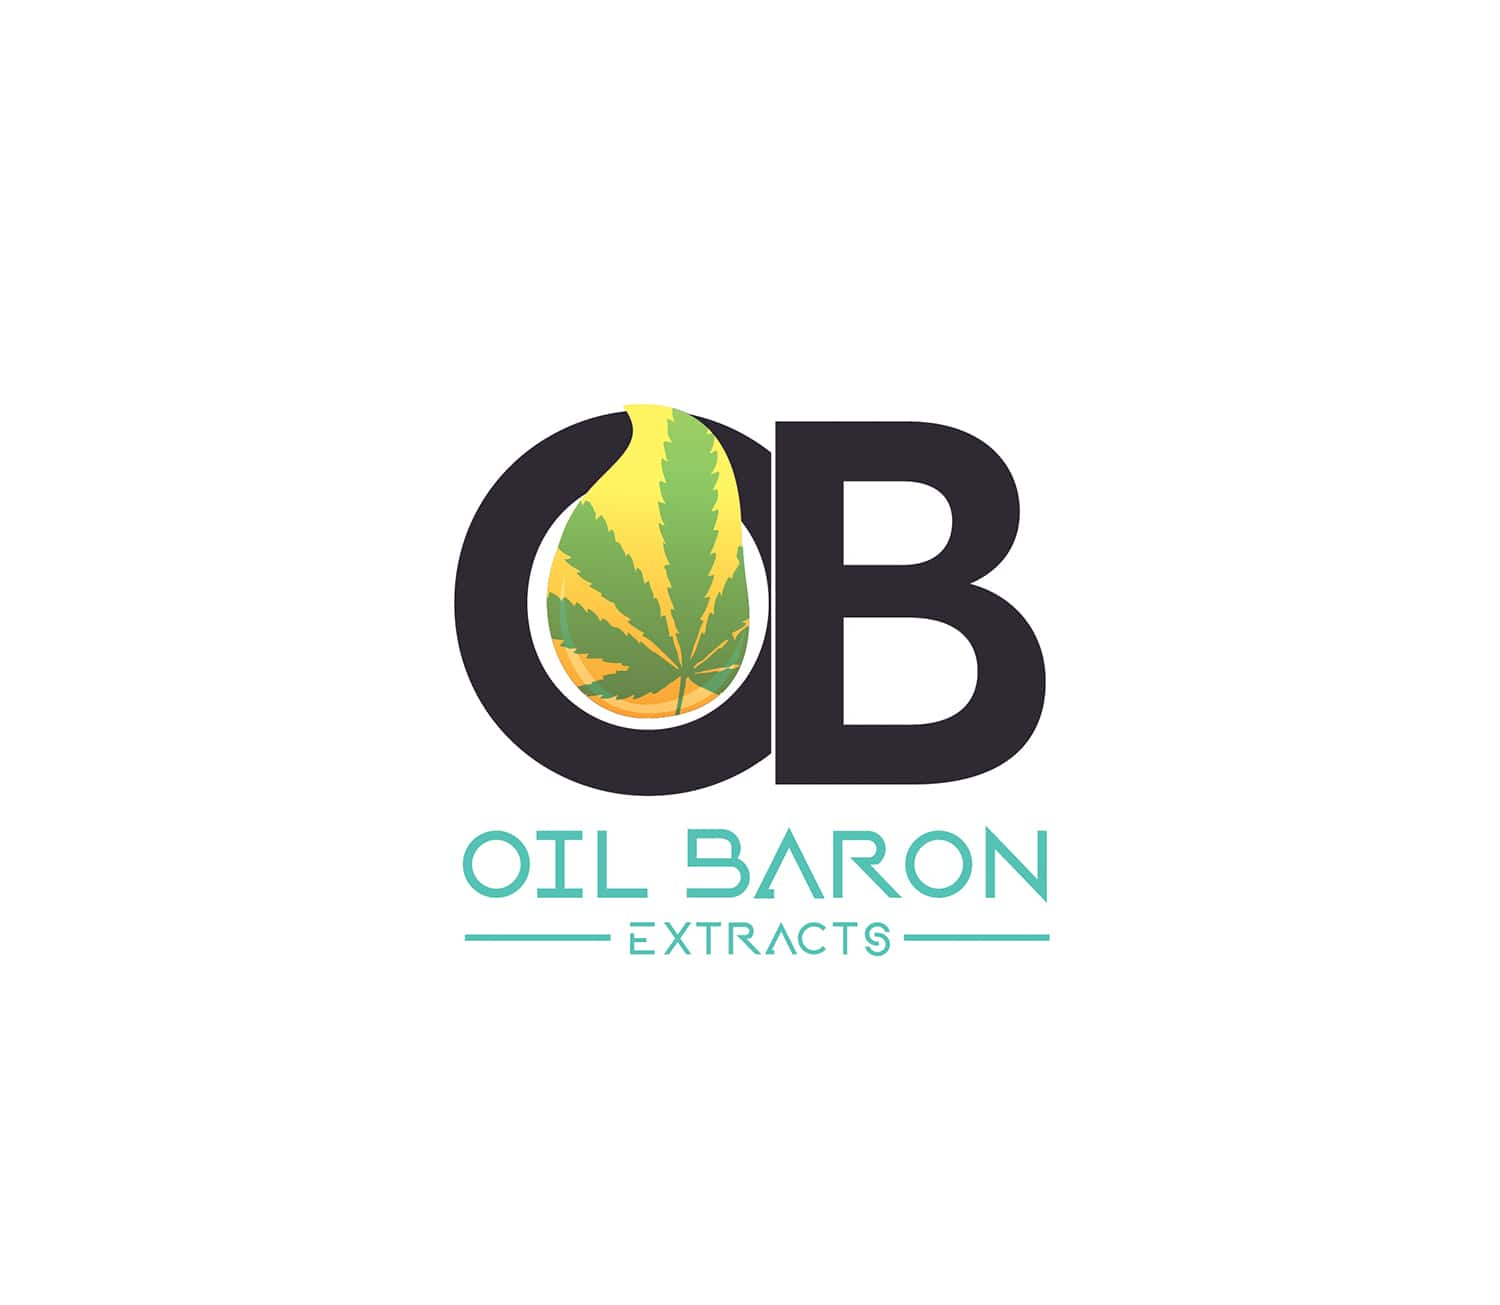 Oil Baron Extracts